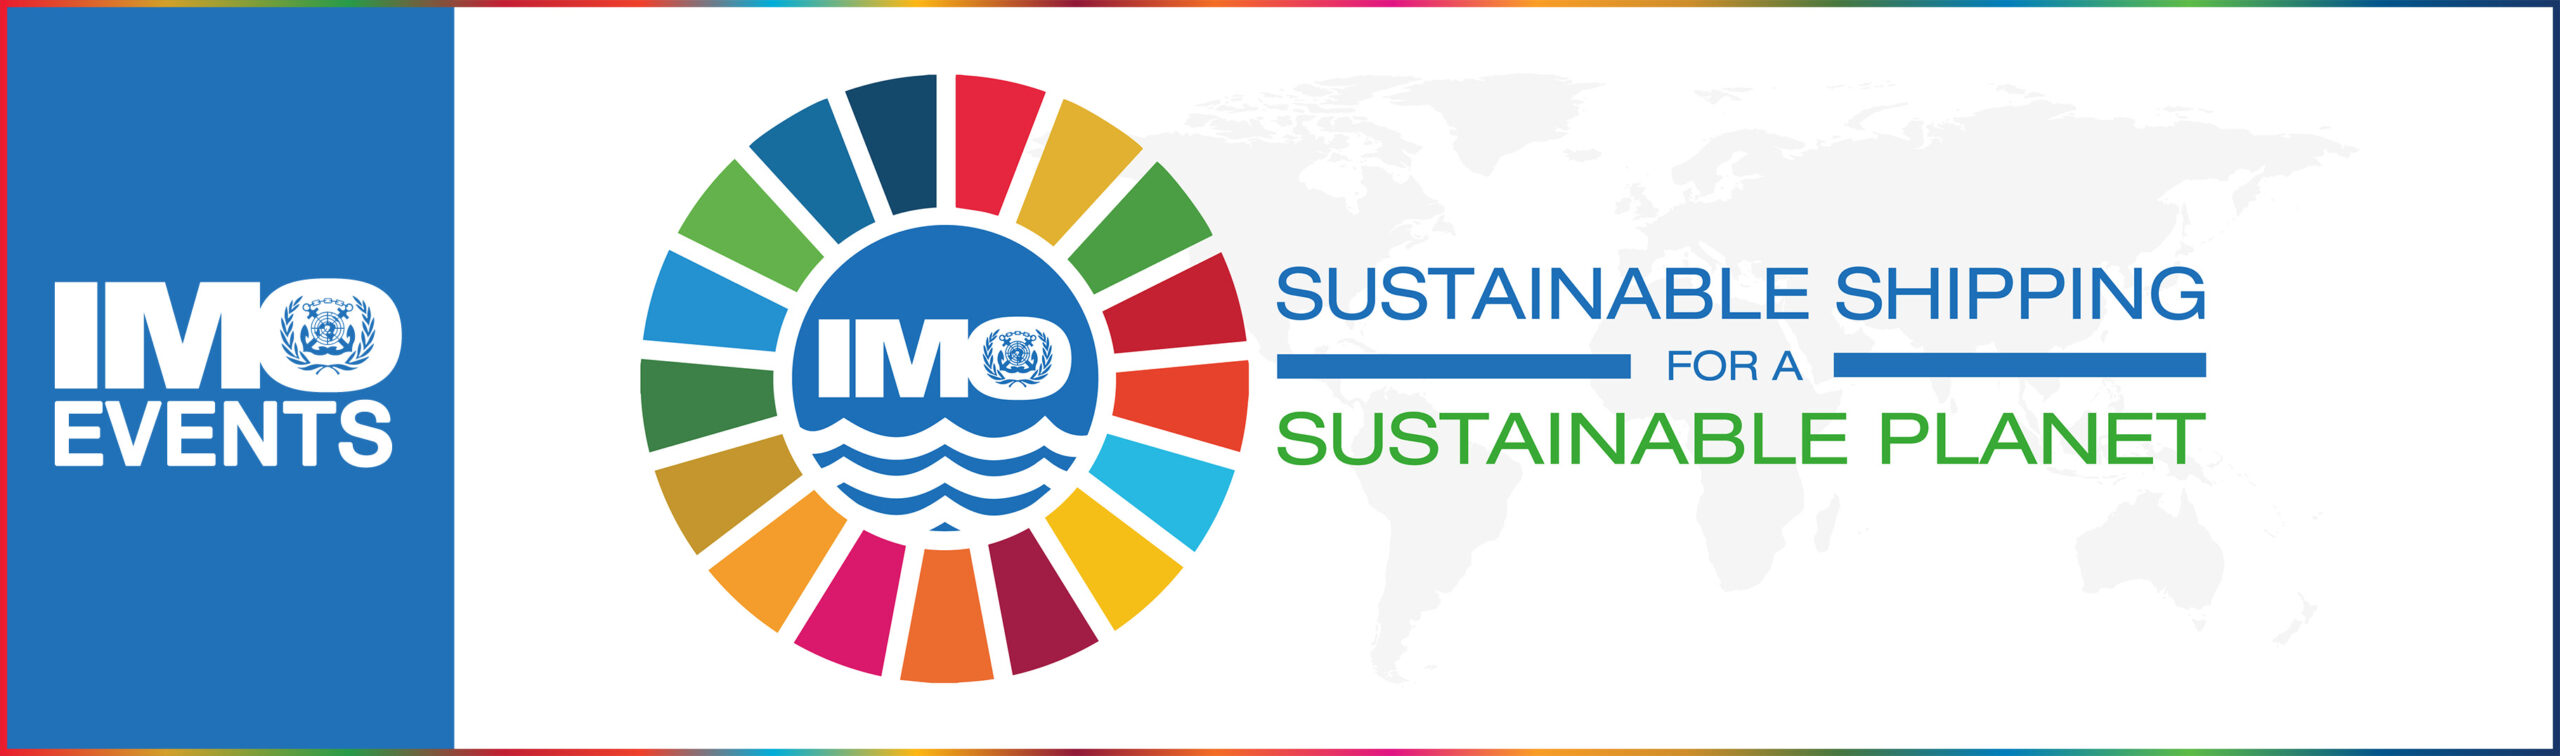 World Maritime Day 2020: Sustainable Shipping for a Sustainable Planet